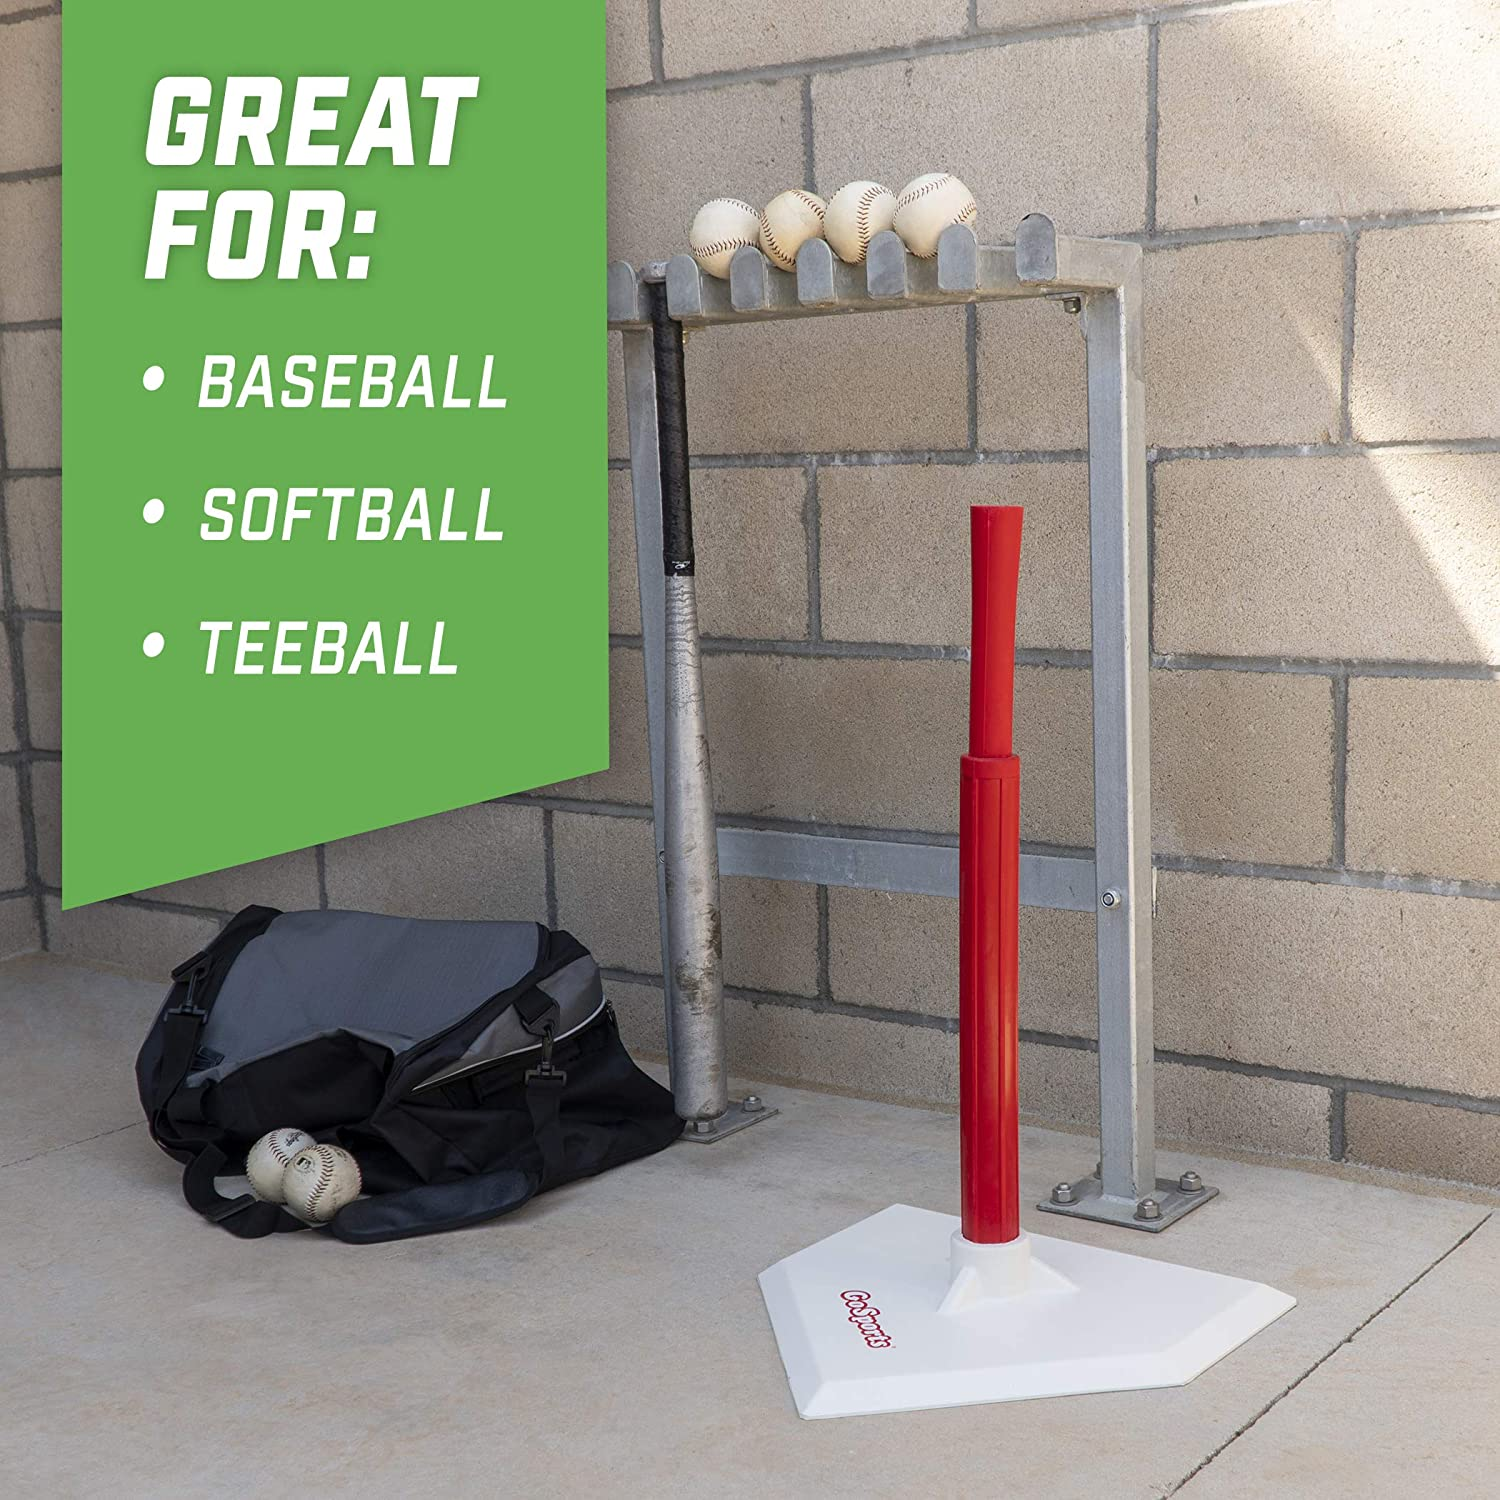 GoSports Baseball /& Softball Batting Tee Adjustable Height Rubber Tee for All Leagues and Skill Levels